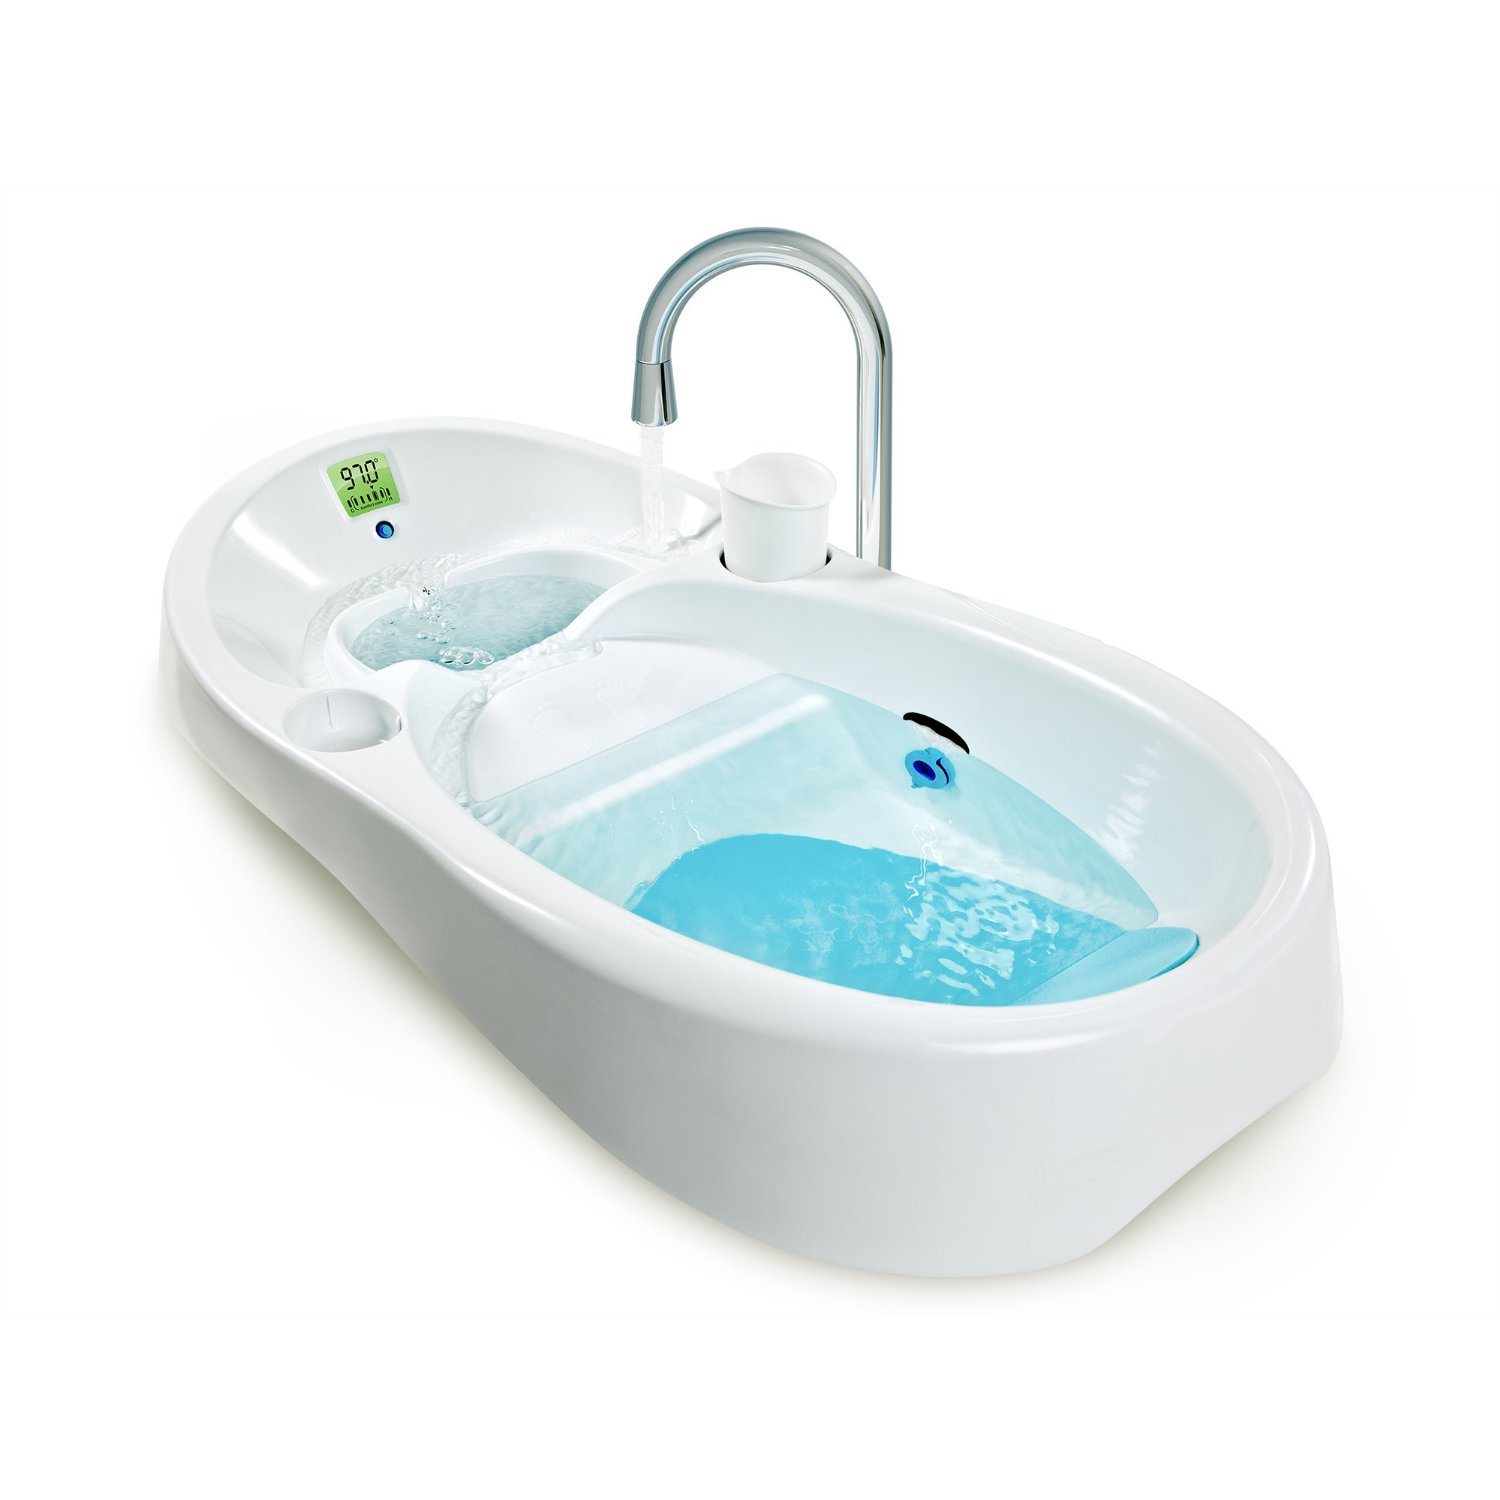 The Top 8 Best Baby bath tubs in 2018 – reviews and comparison ...